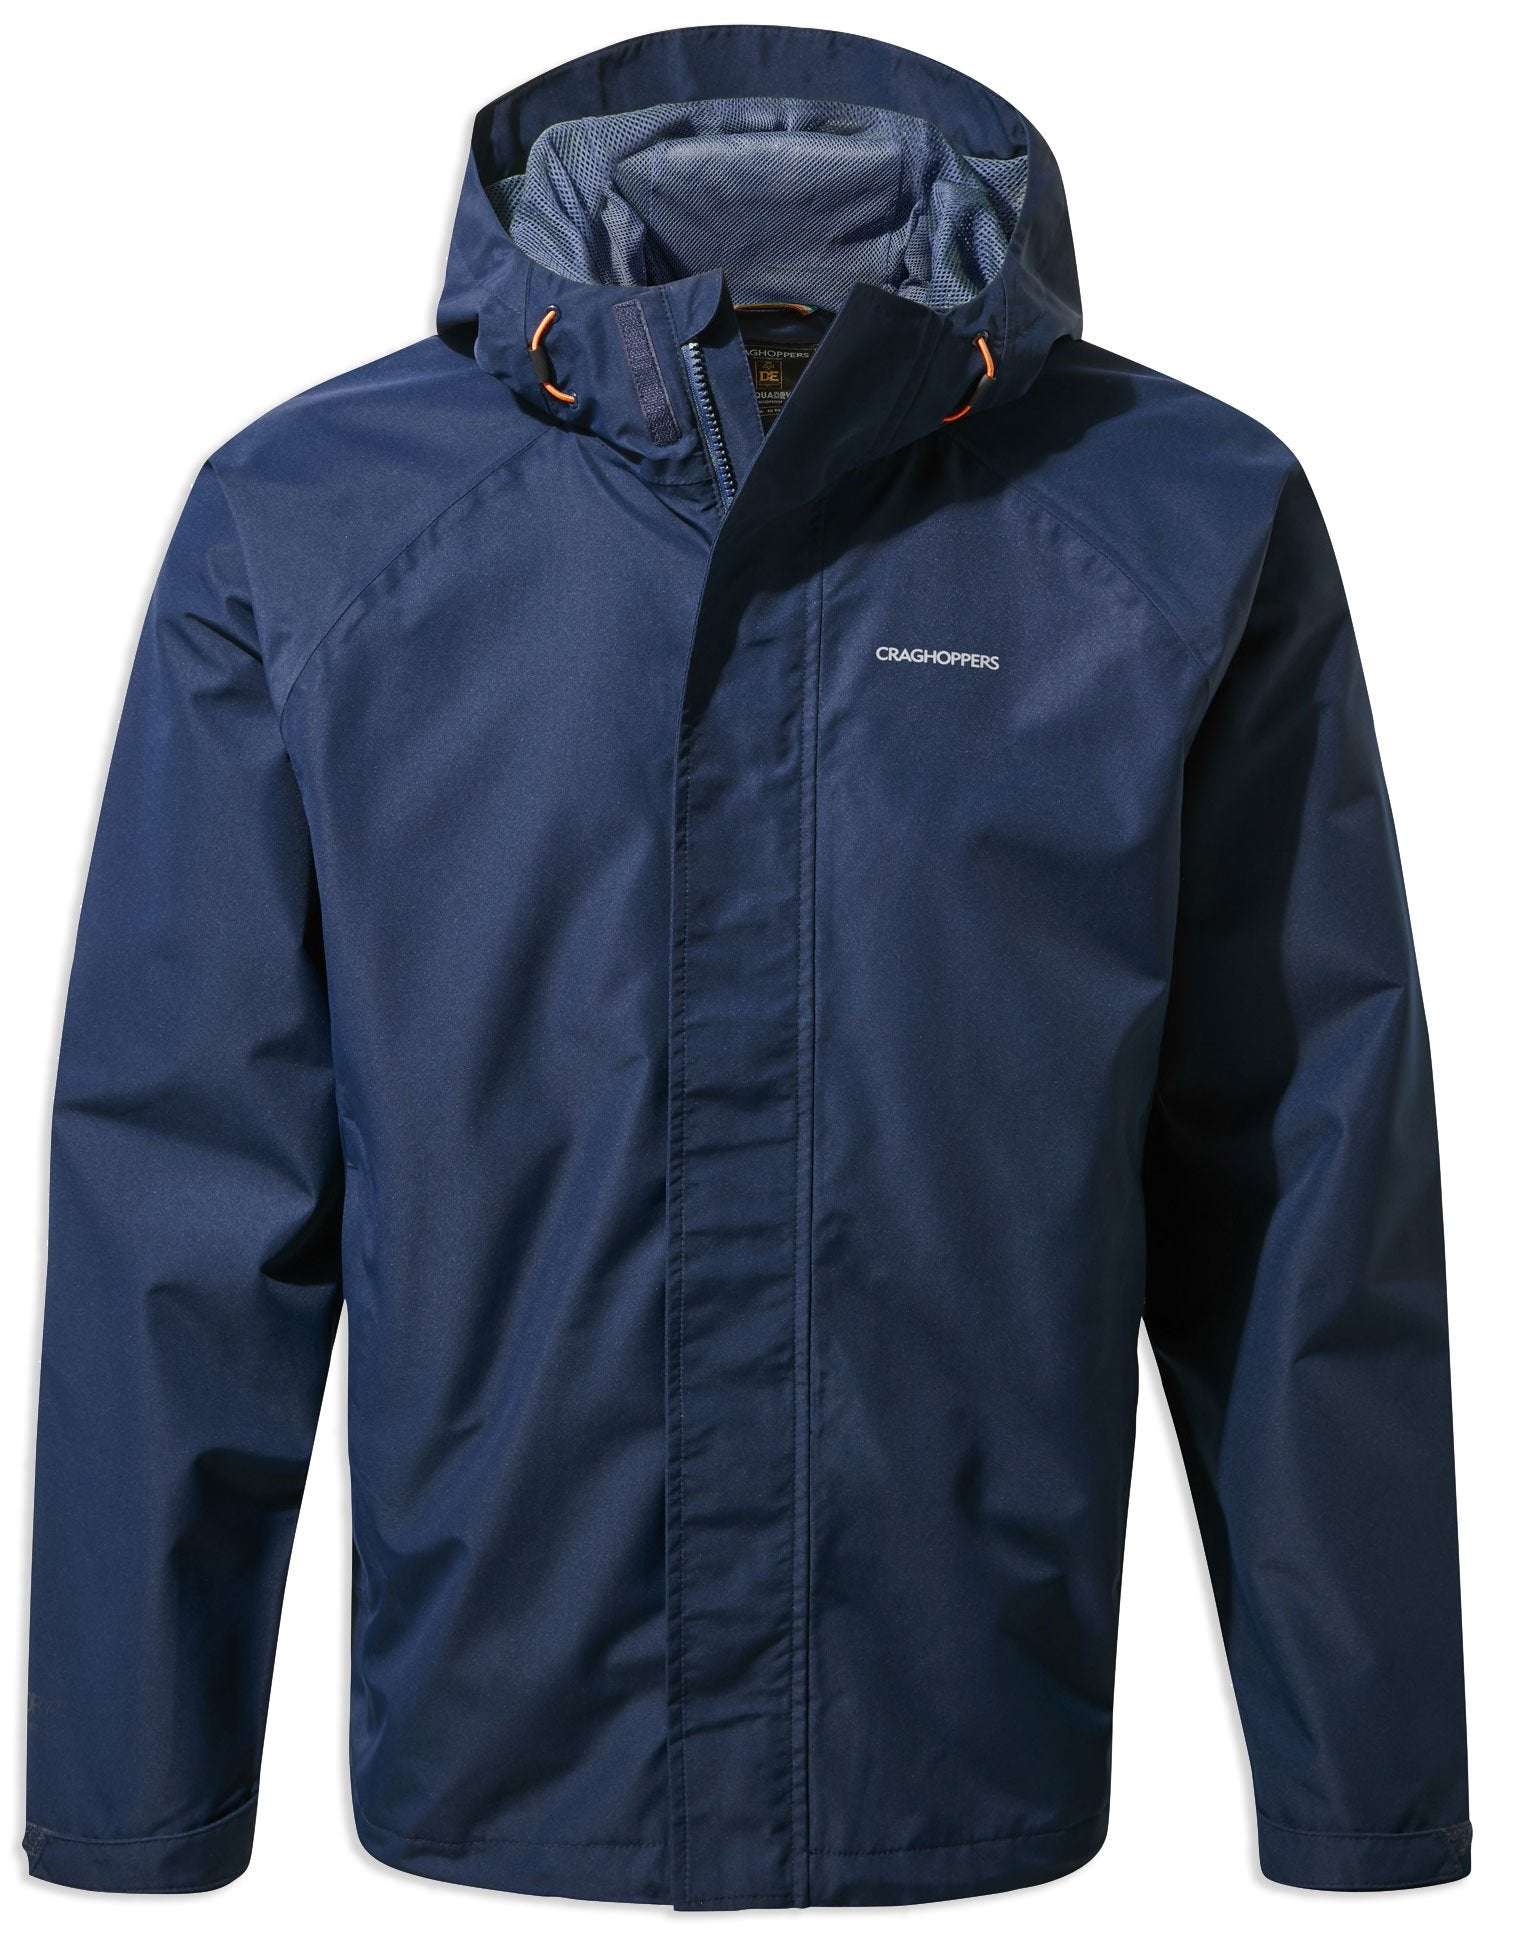 Blue NAvy Orion Waterproof Jacket by Craghoppers